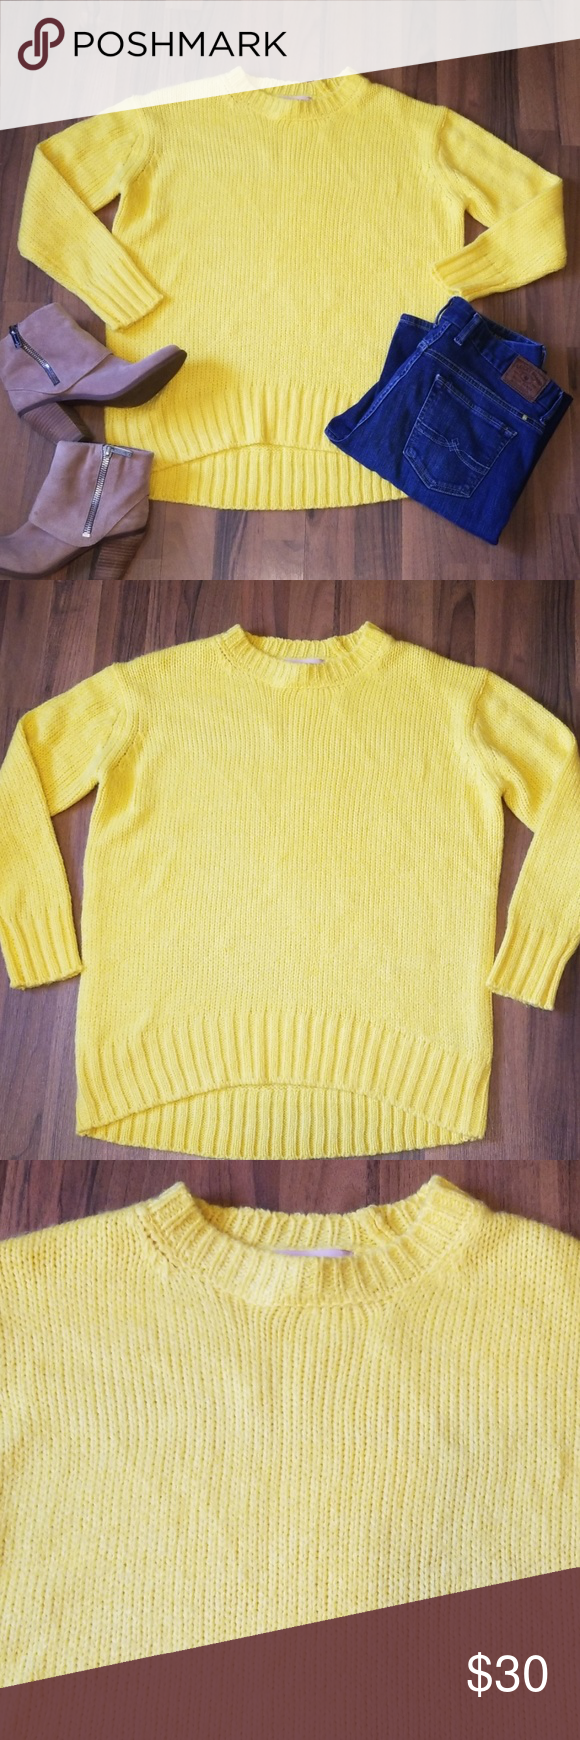 Philosophy Bright Yellow Sweater Yellow Sweater Sweaters Clothes Design